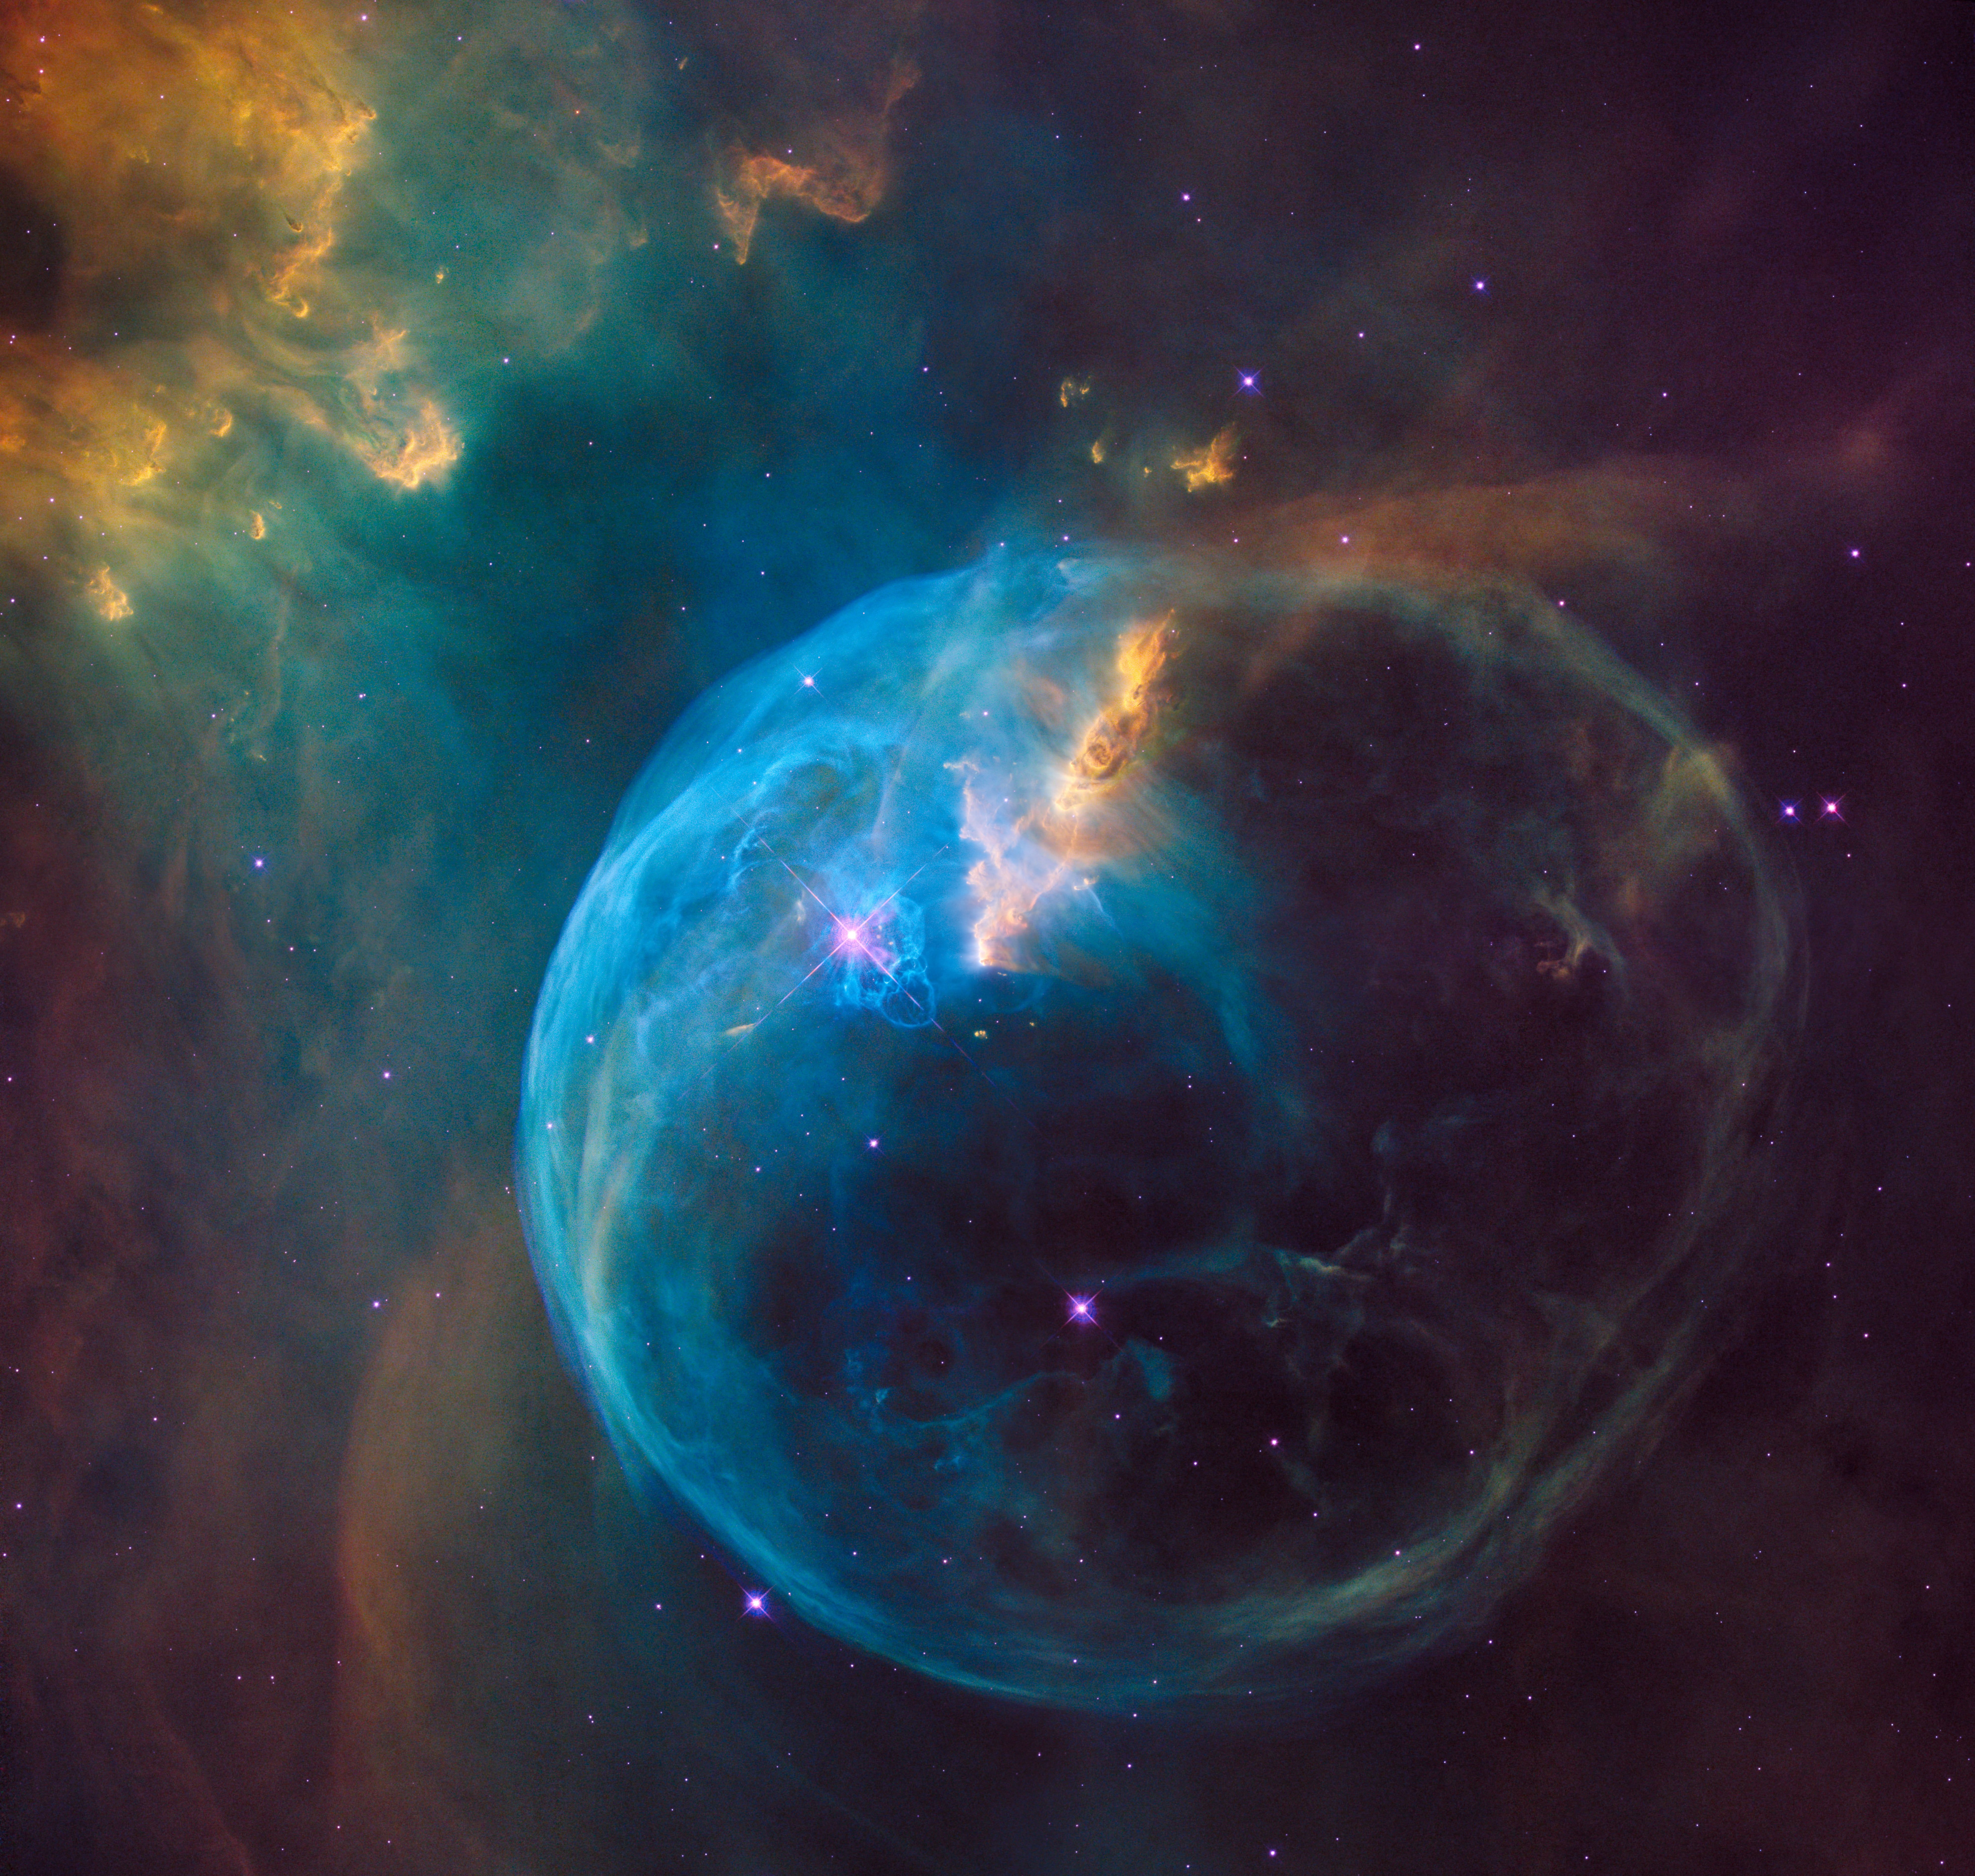 Astronomy Bubble Nebula Cosmos Galaxy Space Universe Abstract Nature Planet Space Backgrounds Star Space Nebula Digital Wallpaper Galaxy Wallpaper